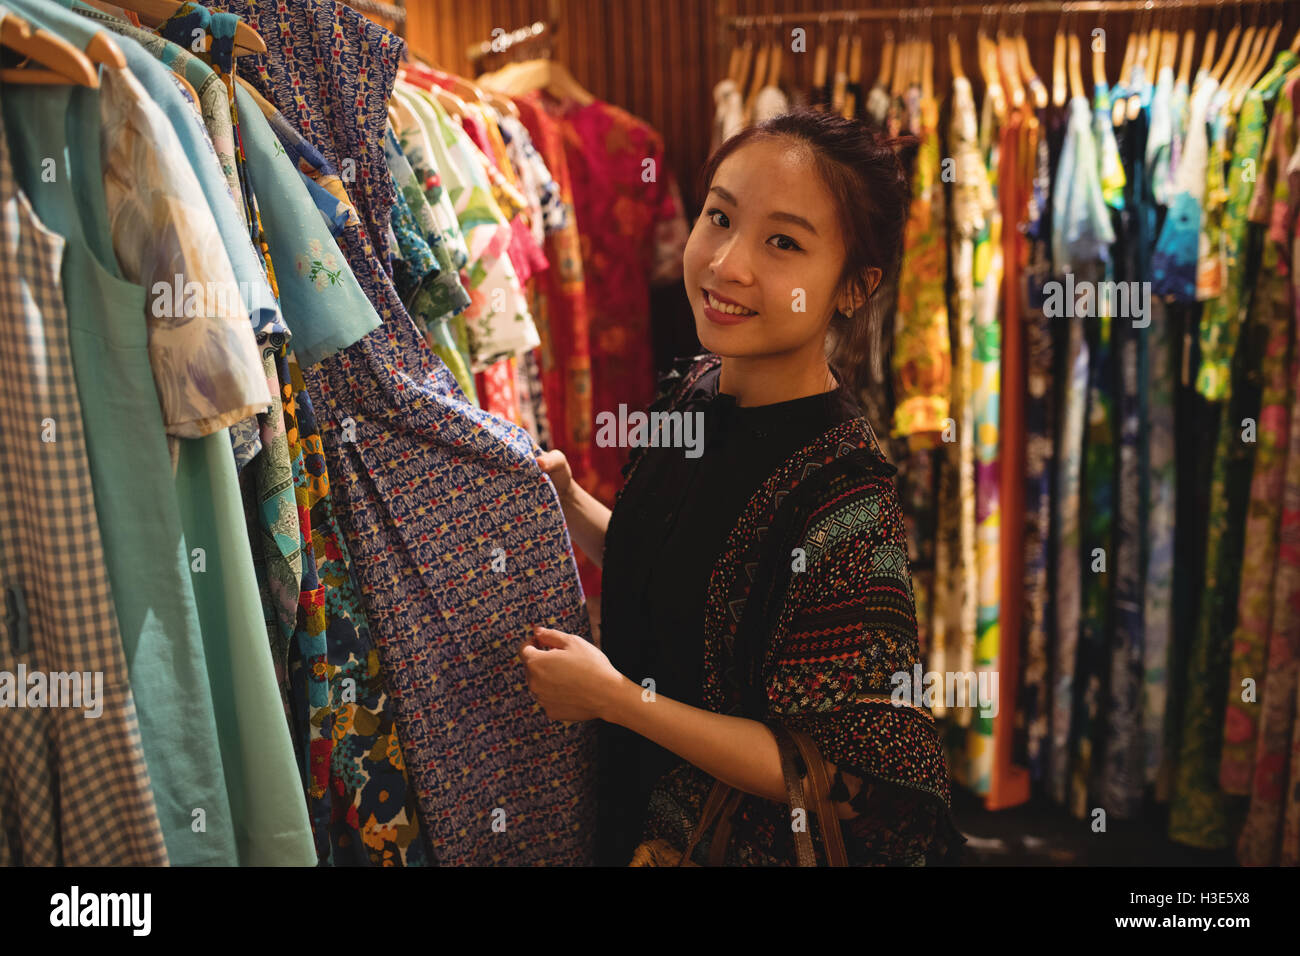 Portrait of smiling woman selecting a clothes - Stock Image